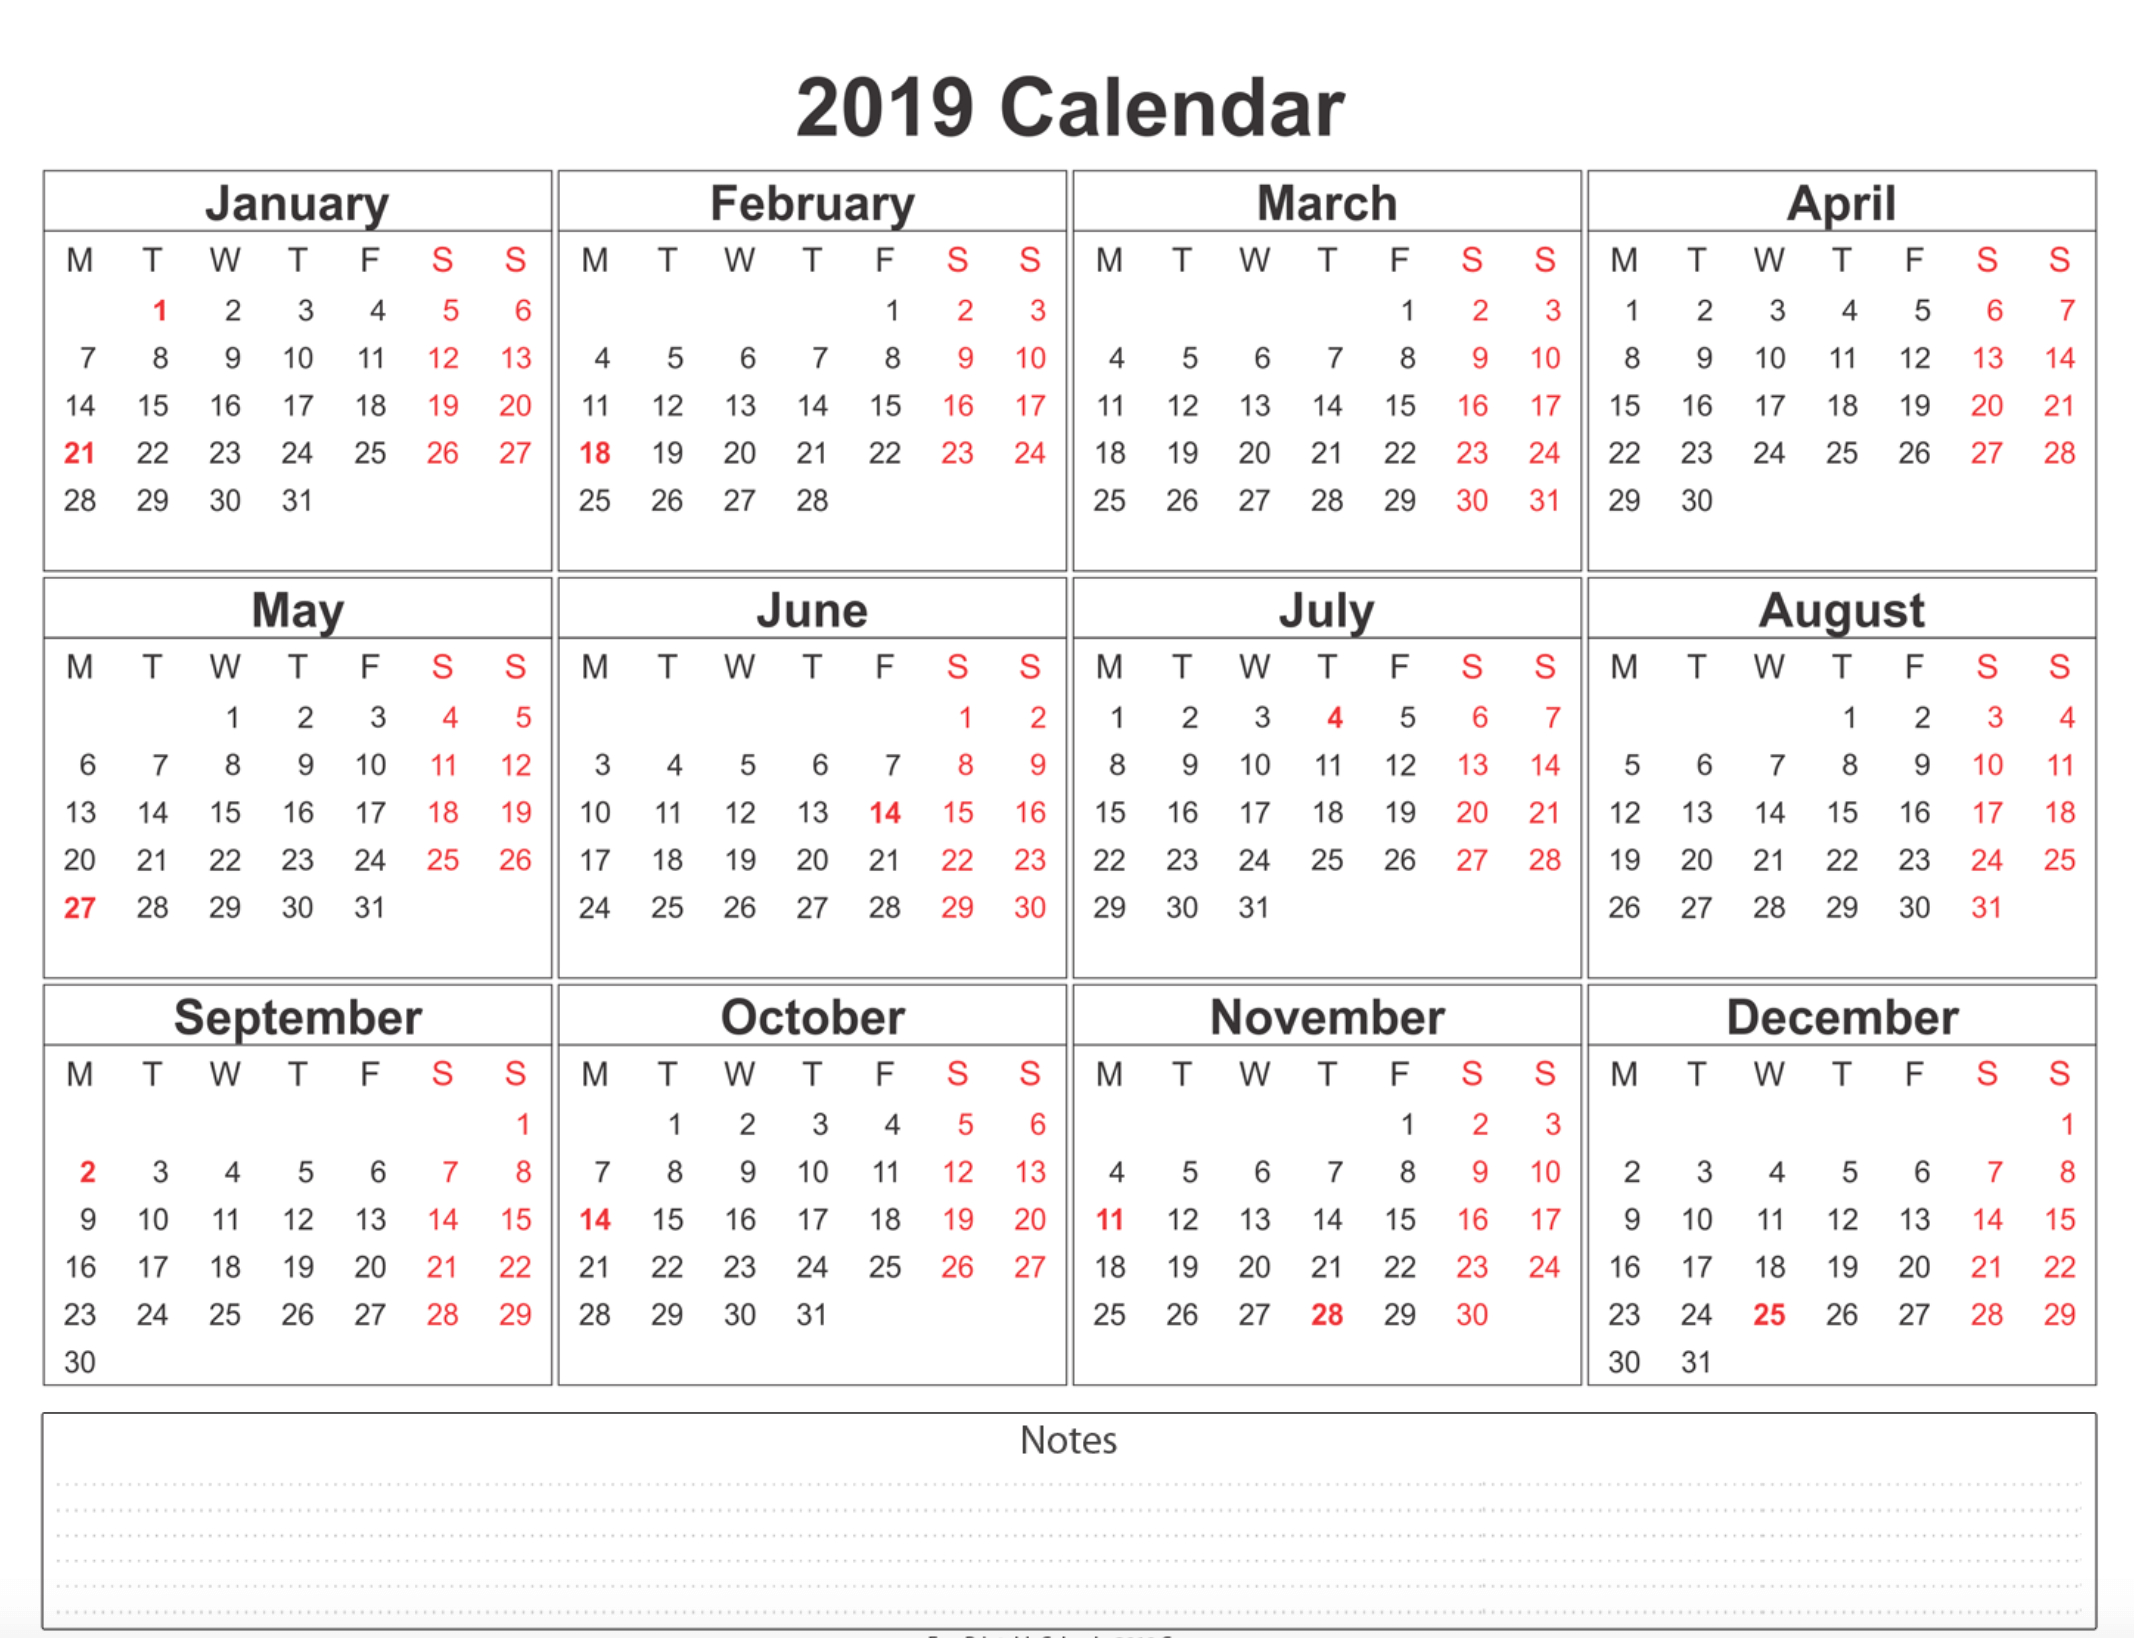 Free Blank Printable Calendar 2019 With Holidays Template Word within Monthly Calendar Templates 12 Months